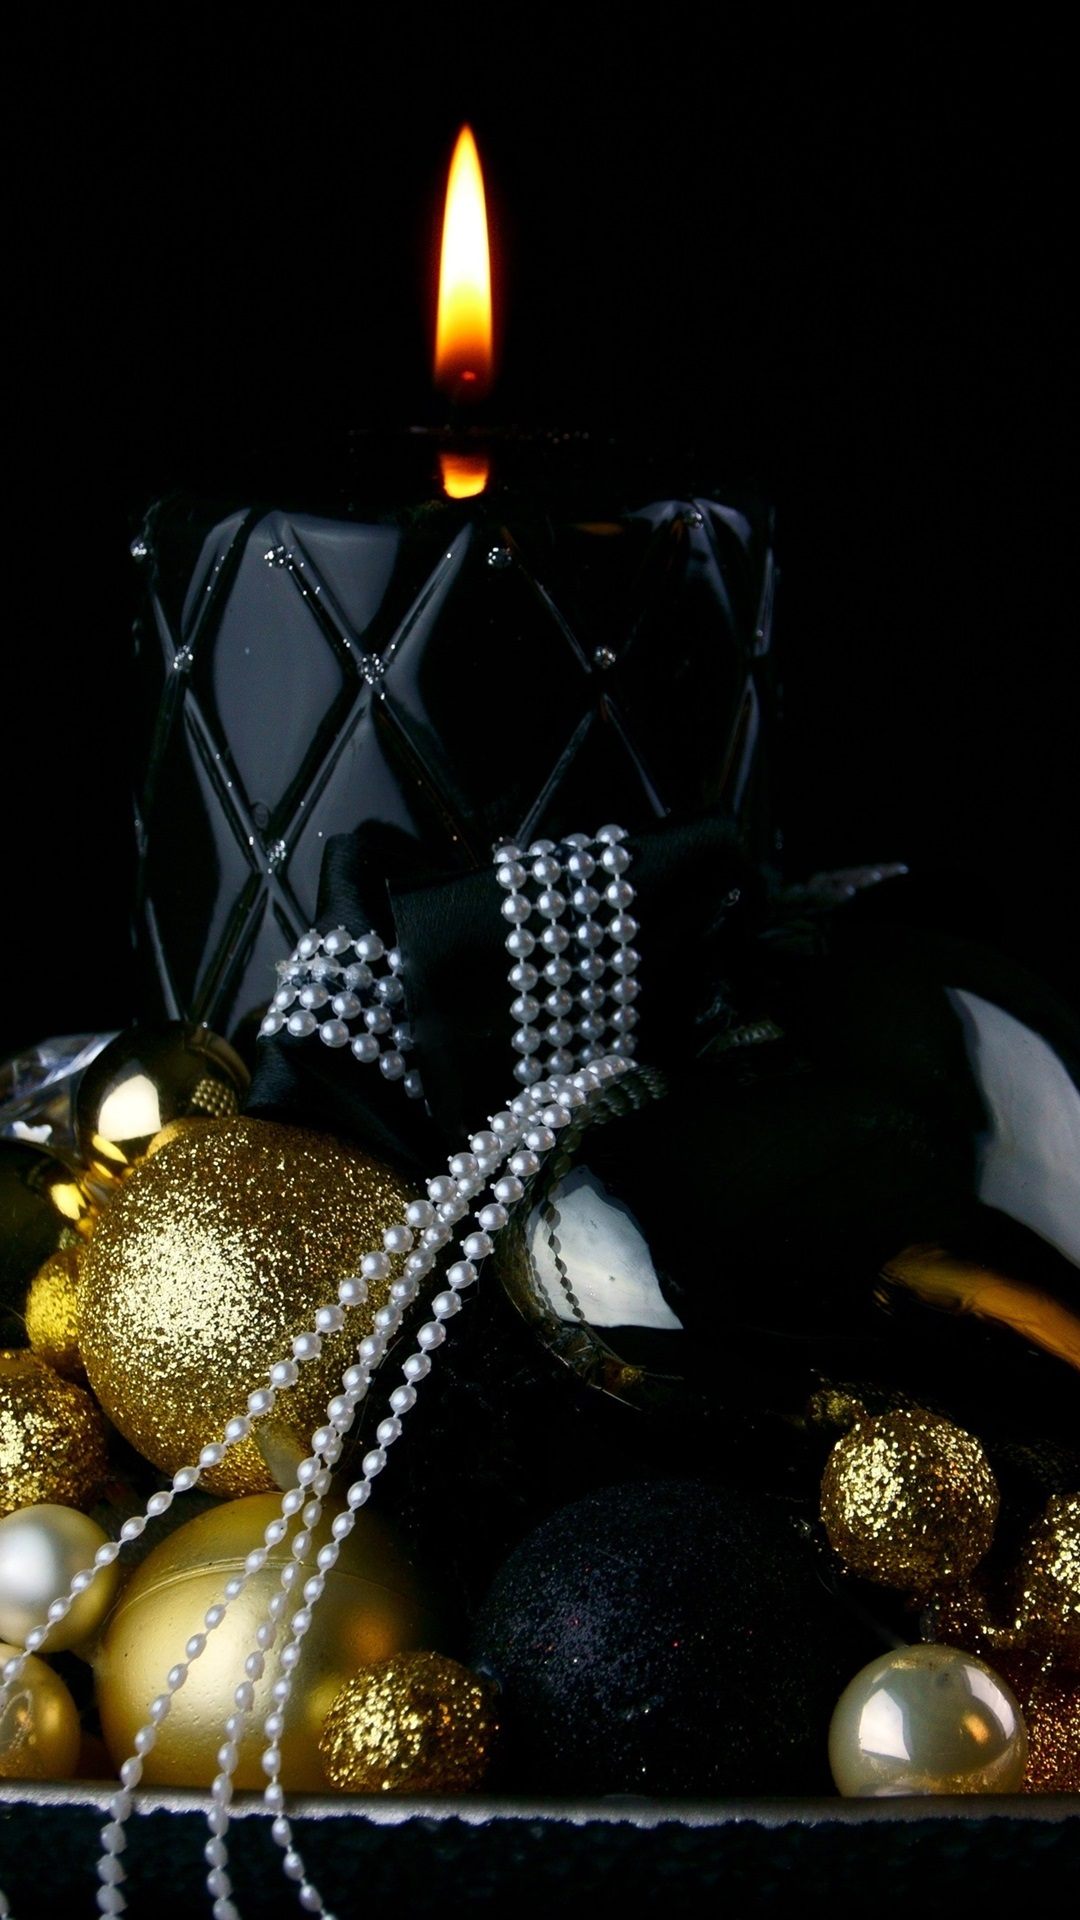 Christmas Balls Candle Flame Black Background 1080x1920